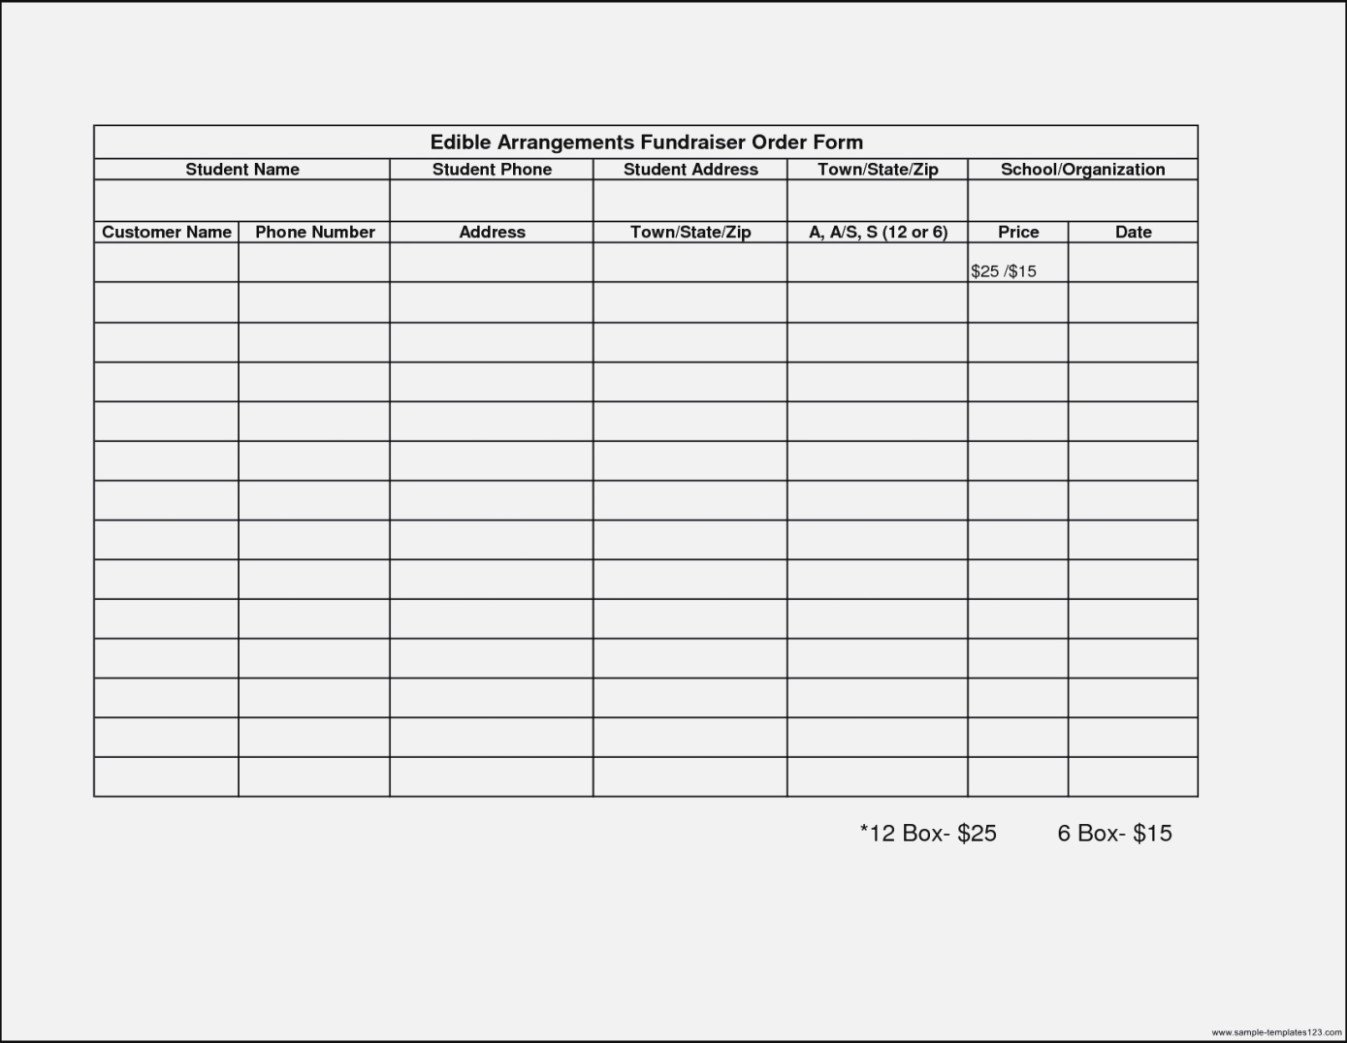 Fundraising order form Templates 12 Ideas to organize Your Own Fundraiser